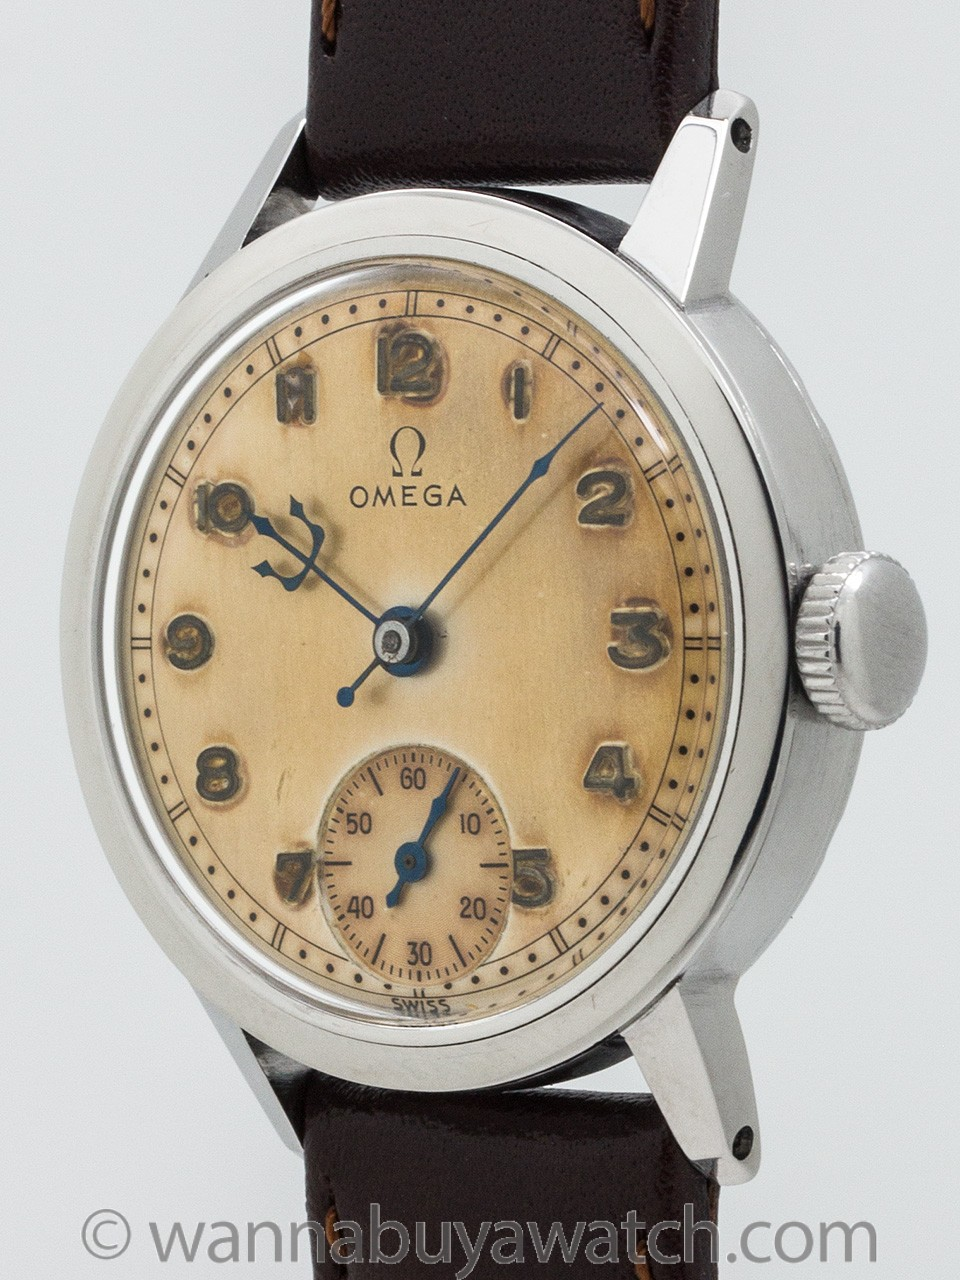 Wanna buy a watch vintage omega ss manual wind model circa 1940 svintage omega ss manual wind for Omega watch vintage